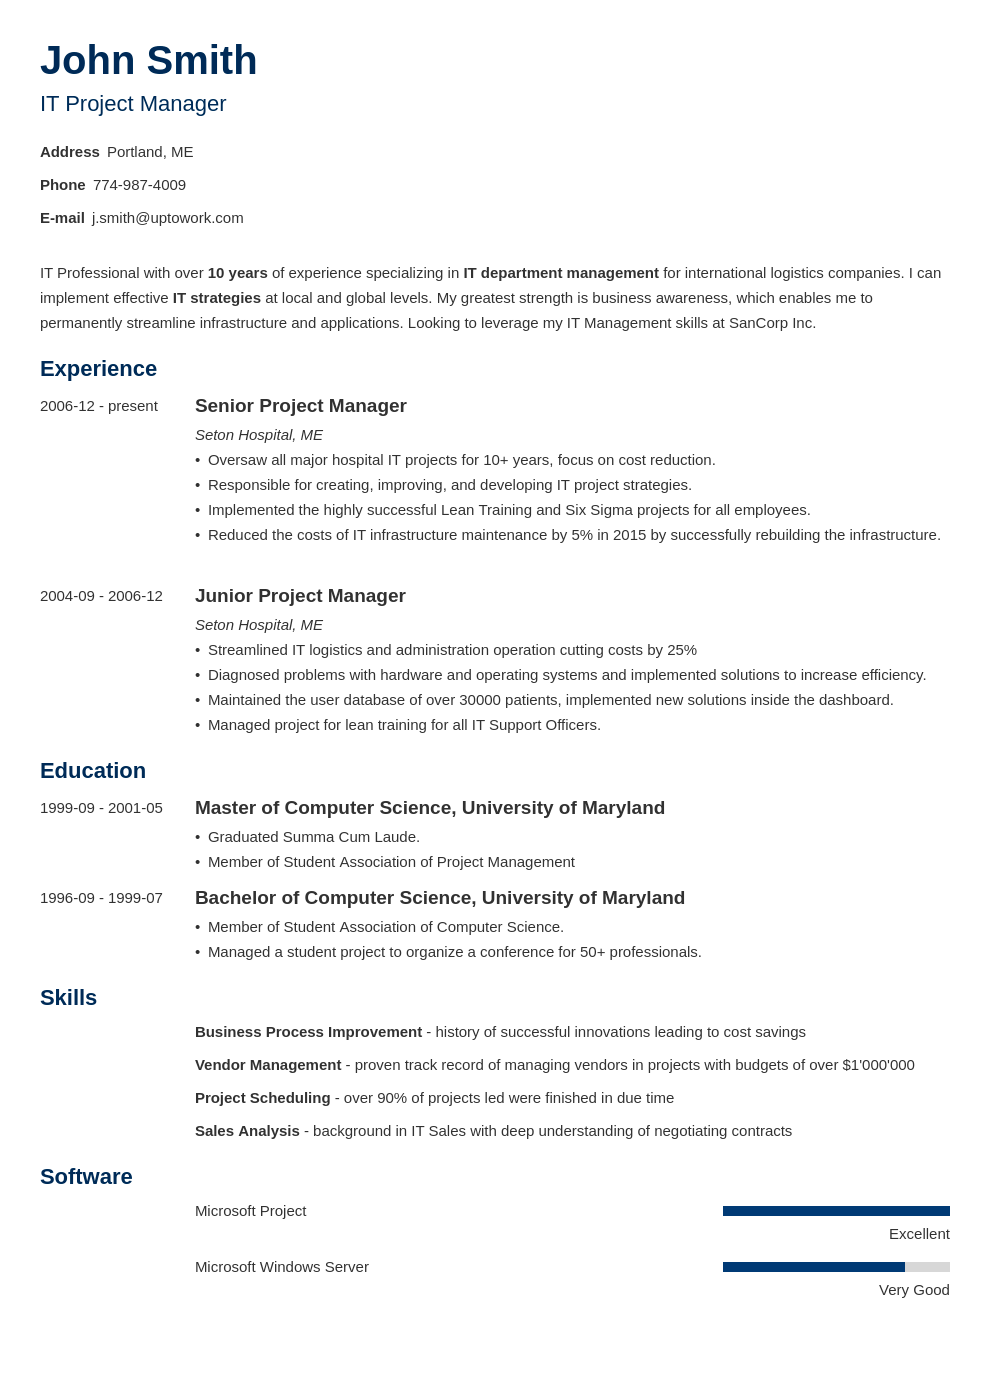 Resume Blank Format Blank Resume Templates 15 Best Blank Resume Forms To Fill In Now